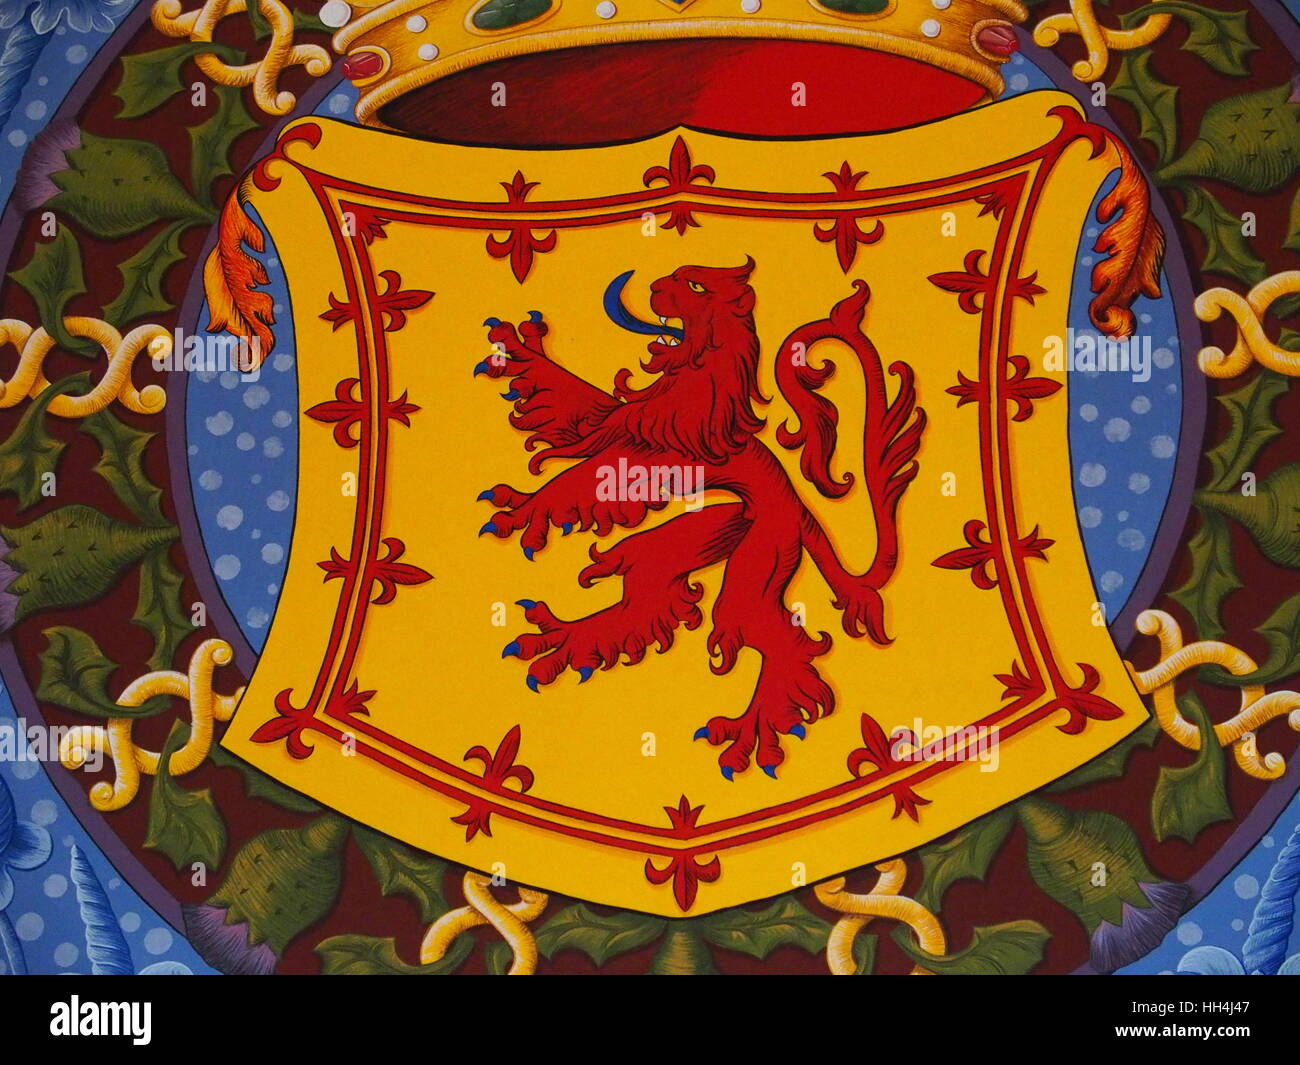 Painting of red scottish lion rampant symbol of scotland on armorial painting of red scottish lion rampant symbol of scotland on armorial bearings in stirling castle in scotland great britain uk europe august 2016 buycottarizona Image collections